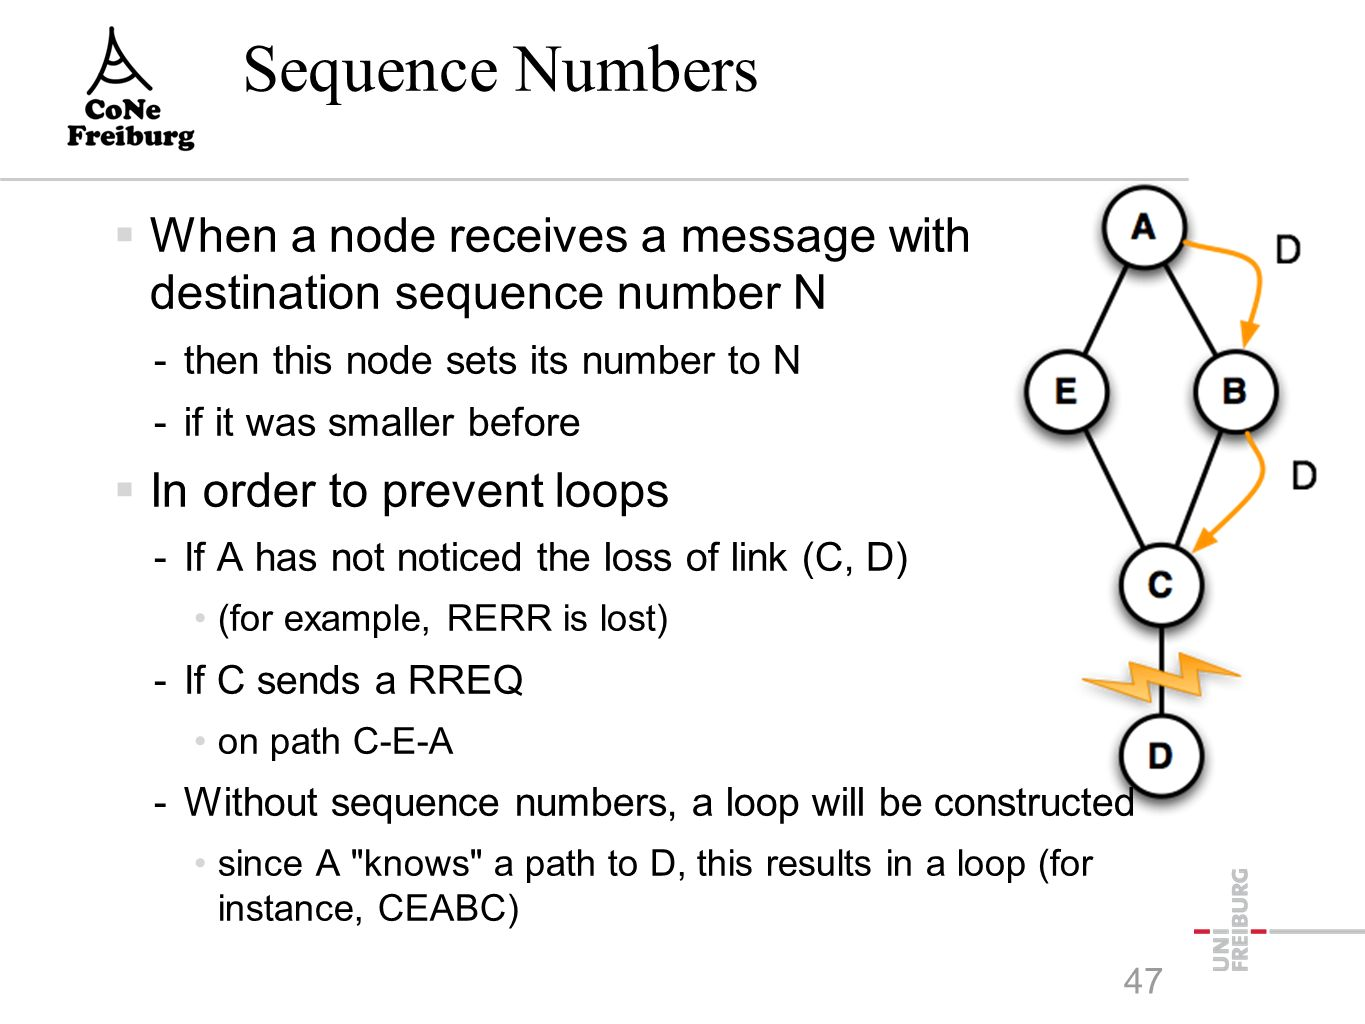 Sequence Numbers  When a node receives a message with destination sequence number N -then this node sets its number to N -if it was smaller before  In order to prevent loops -If A has not noticed the loss of link (C, D) (for example, RERR is lost) -If C sends a RREQ on path C-E-A -Without sequence numbers, a loop will be constructed since A knows a path to D, this results in a loop (for instance, CEABC) 47